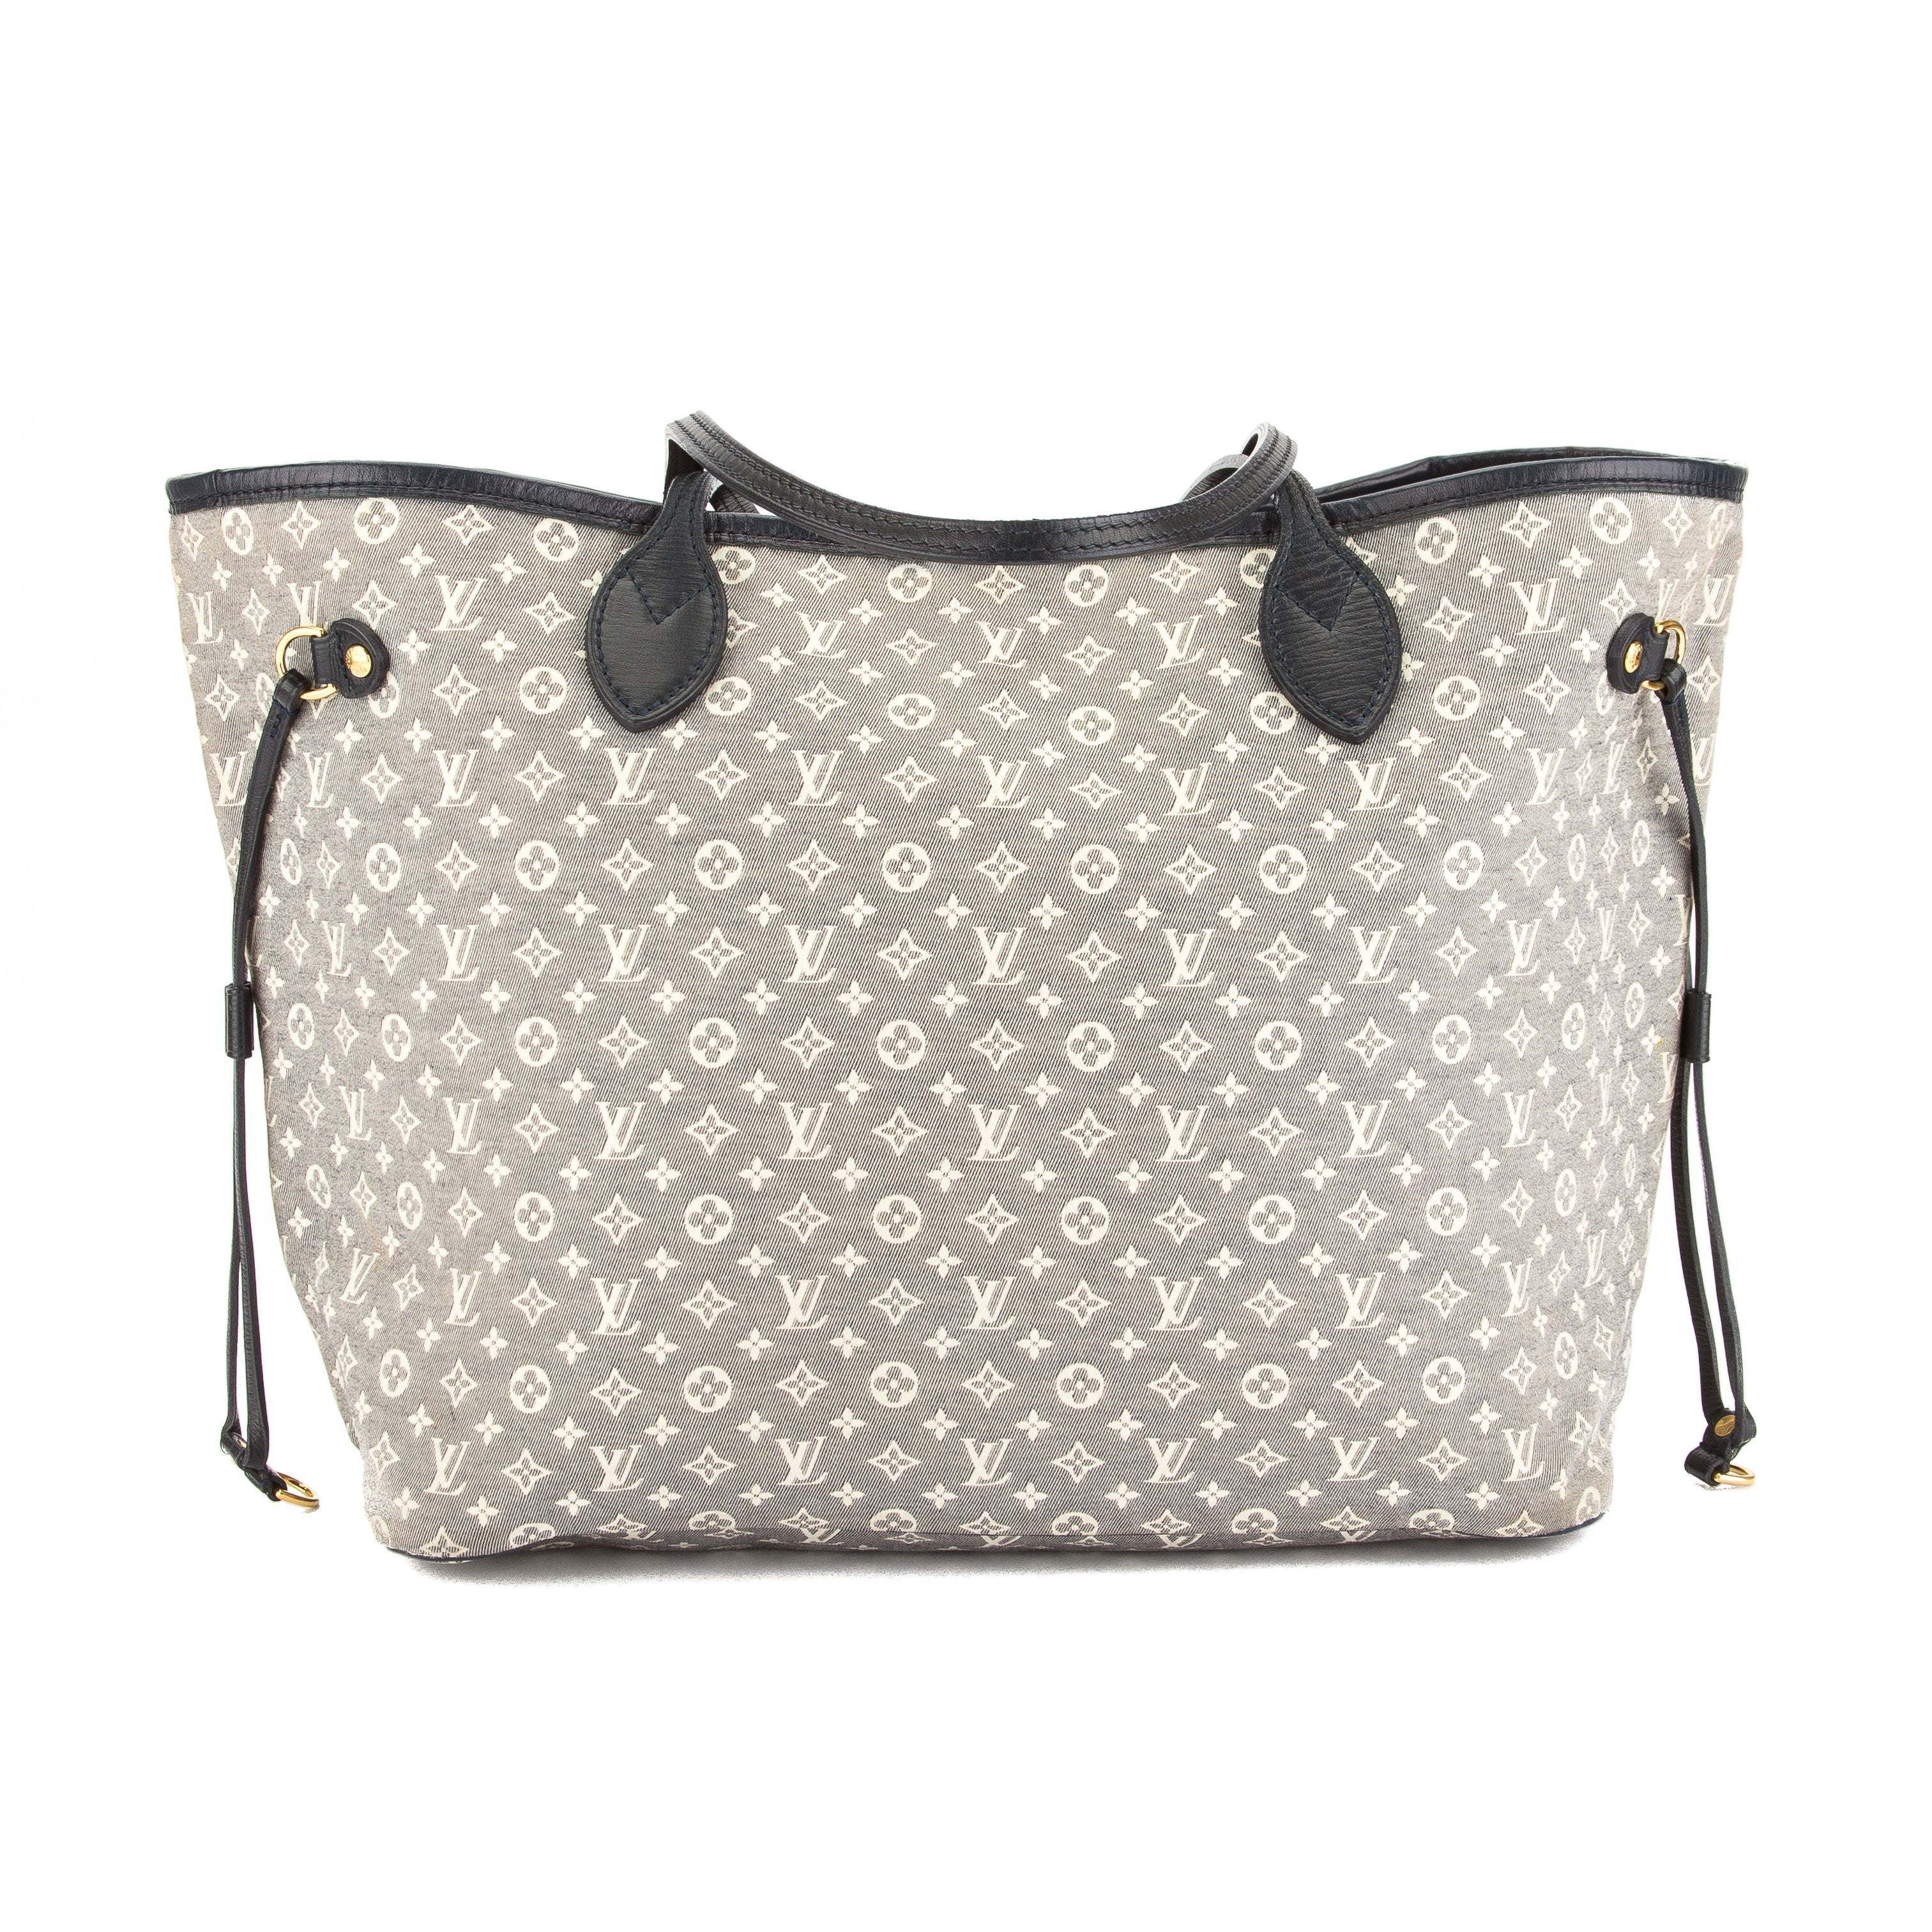 e26f4c6adbef Louis Vuitton Encre Monogram Idylle Canvas Neverfull MM Bag Pre Owned